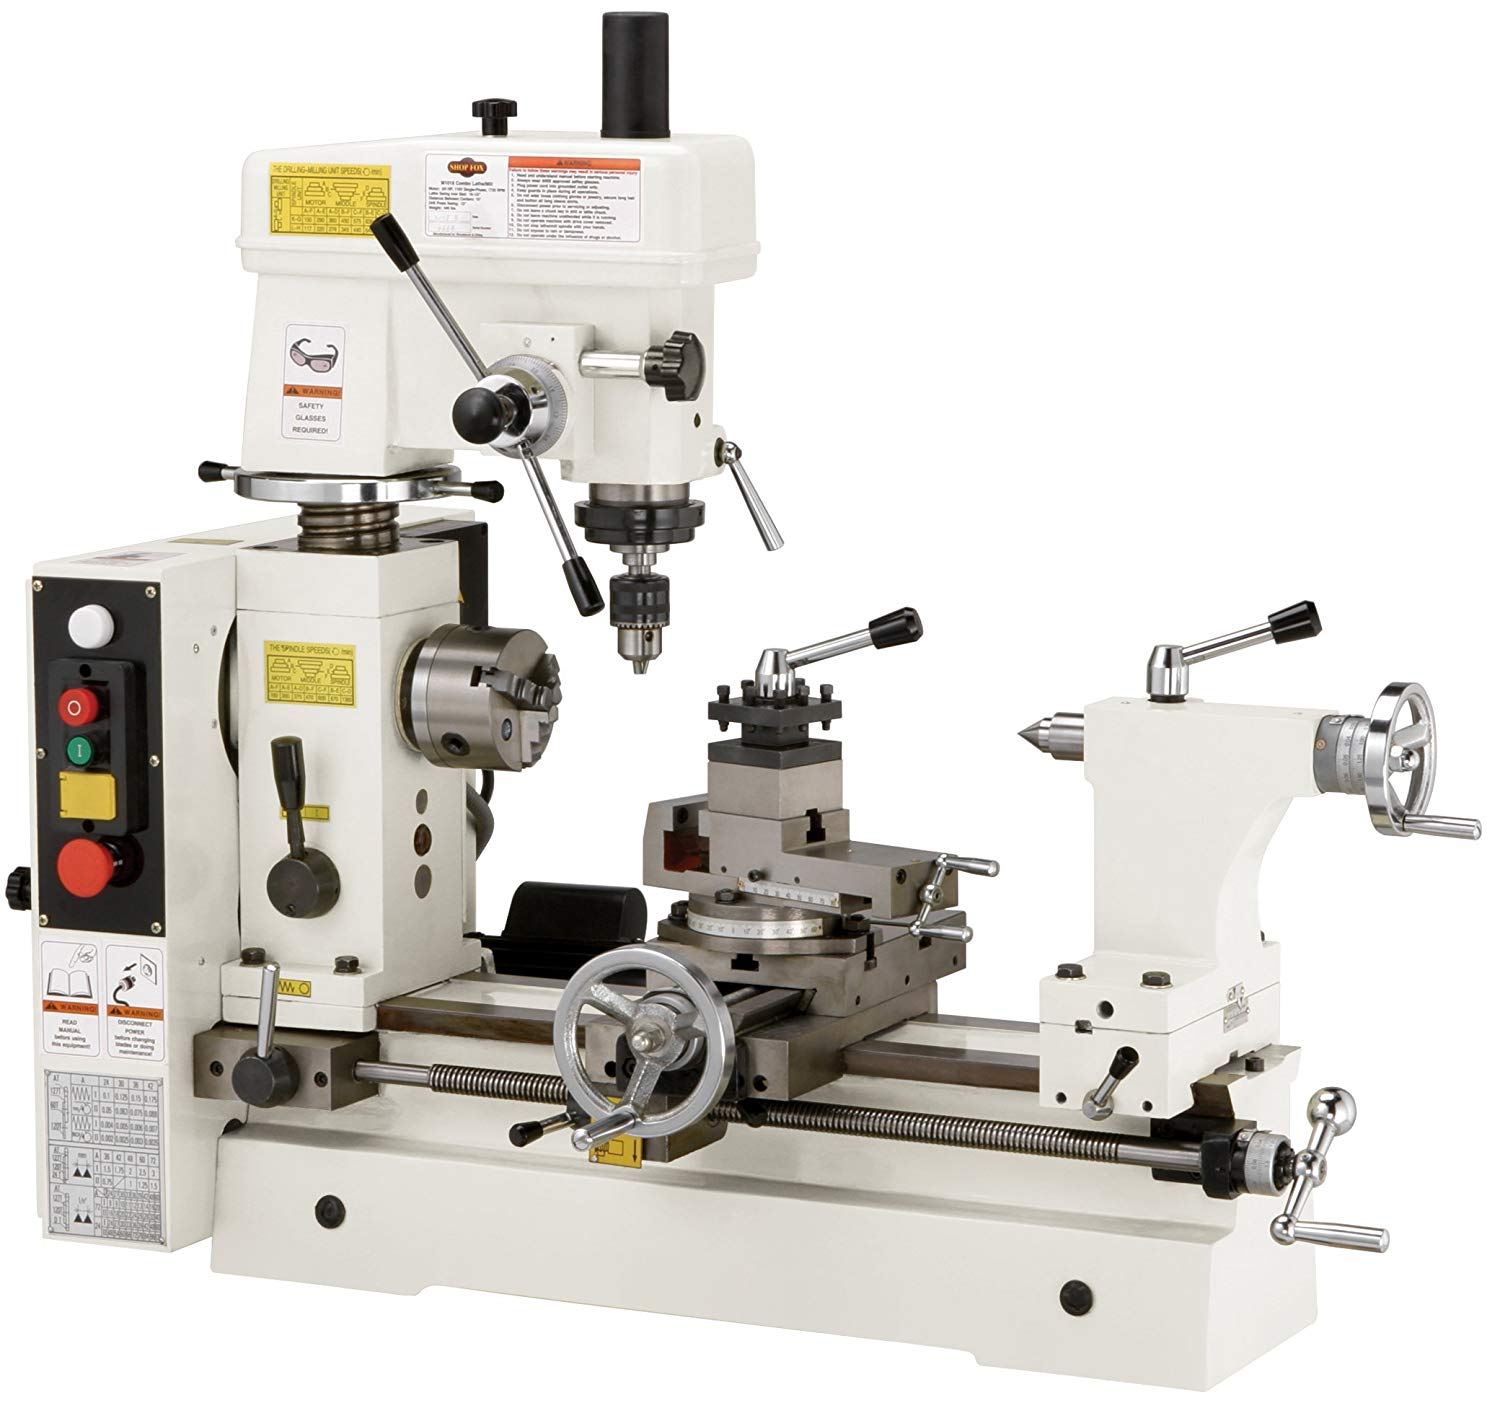 Mill and Lathe Combo Image